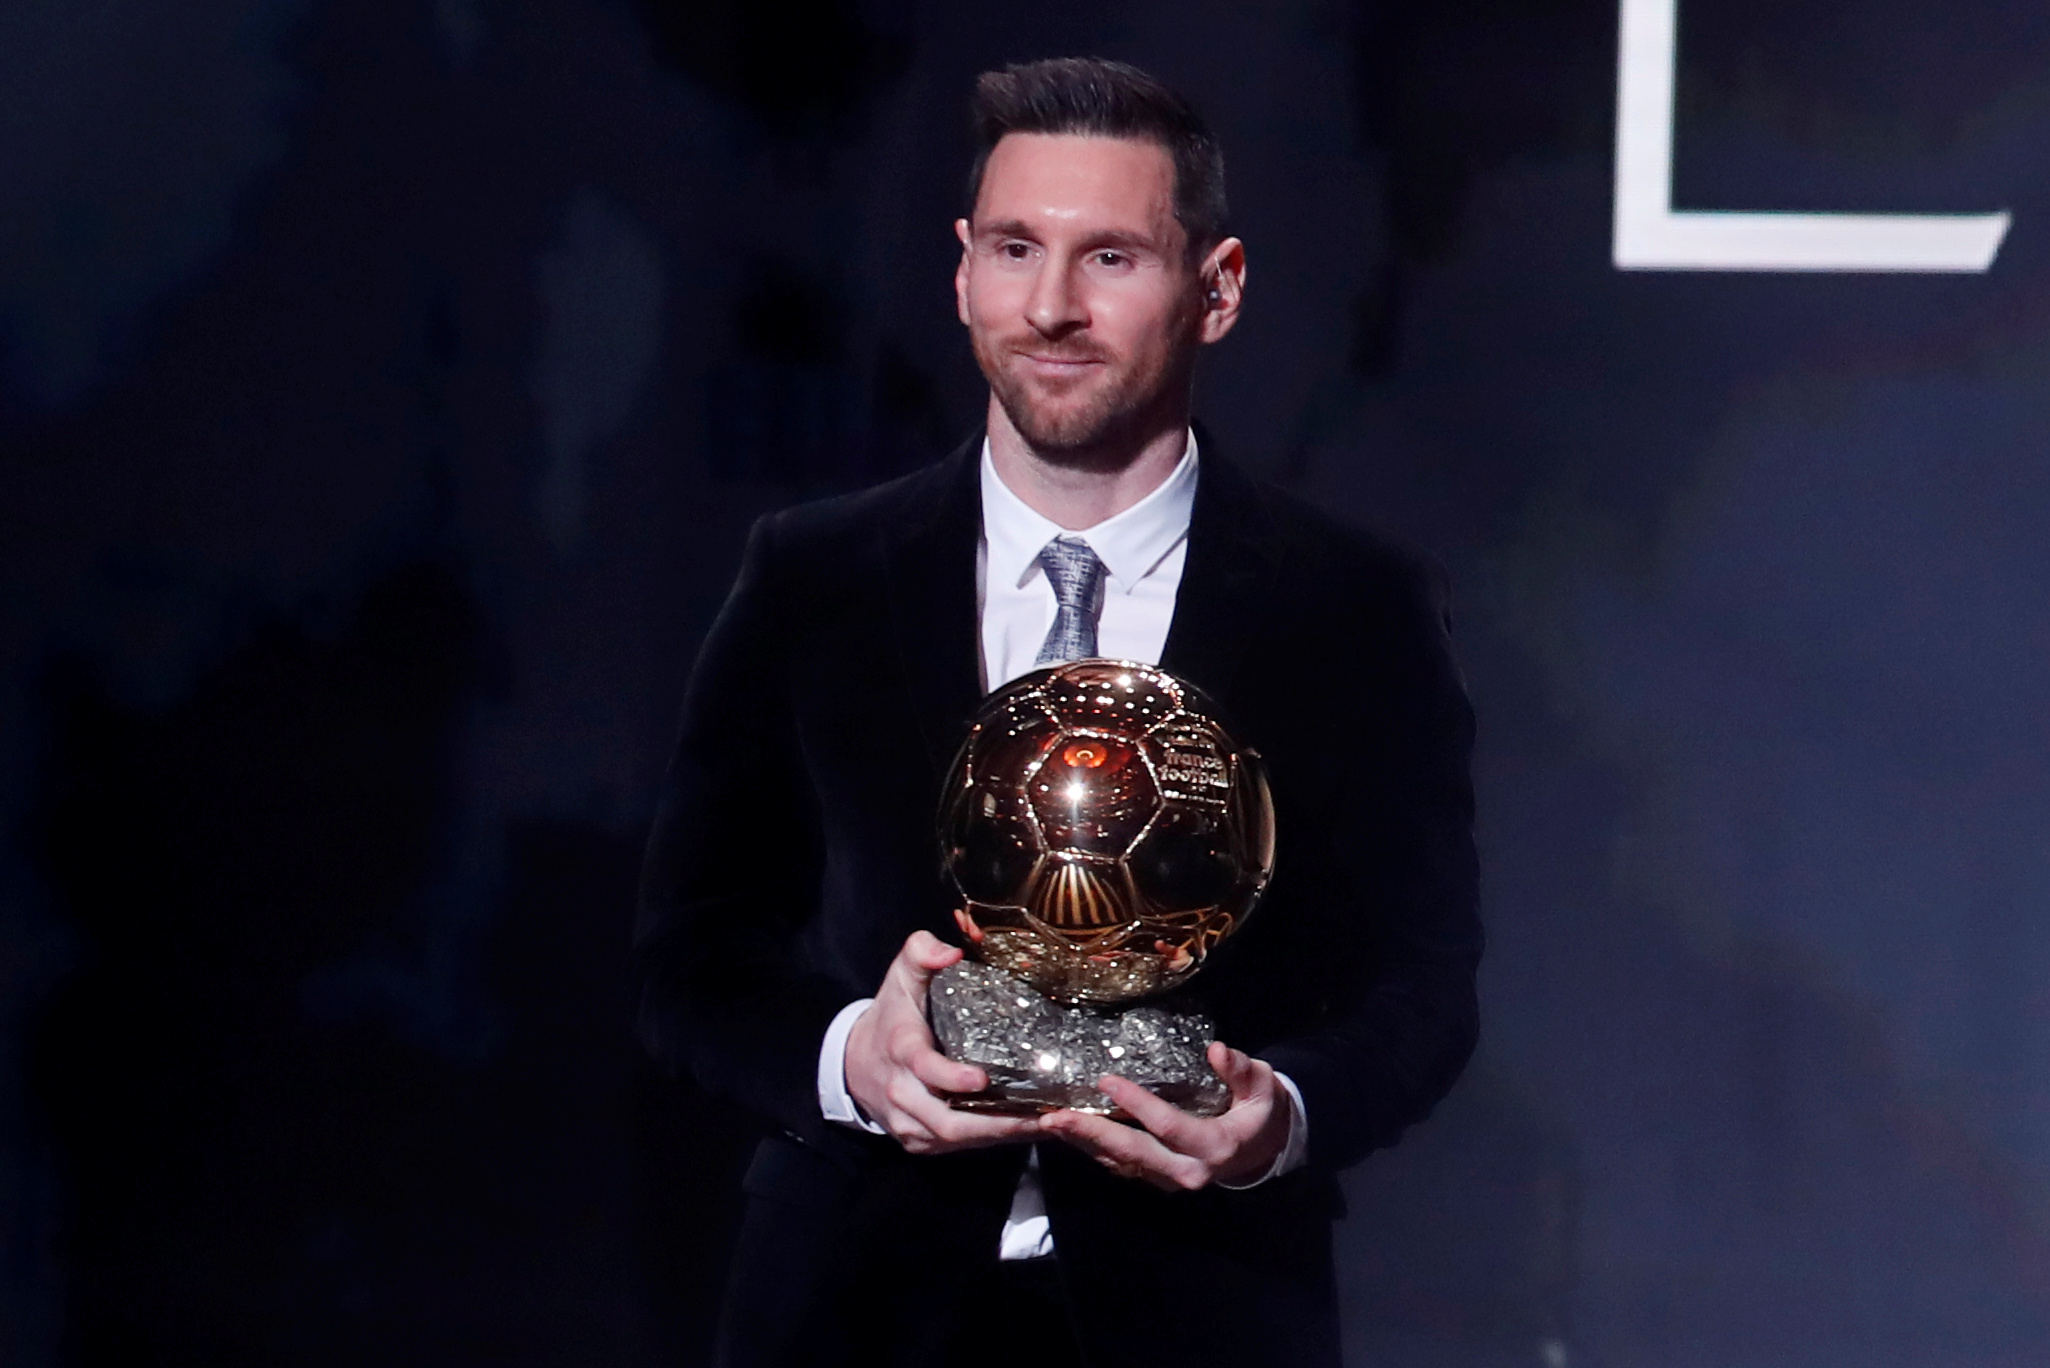 Barcelona prodigy Lionel Messi wins record sixth men's Ballon d'Or award